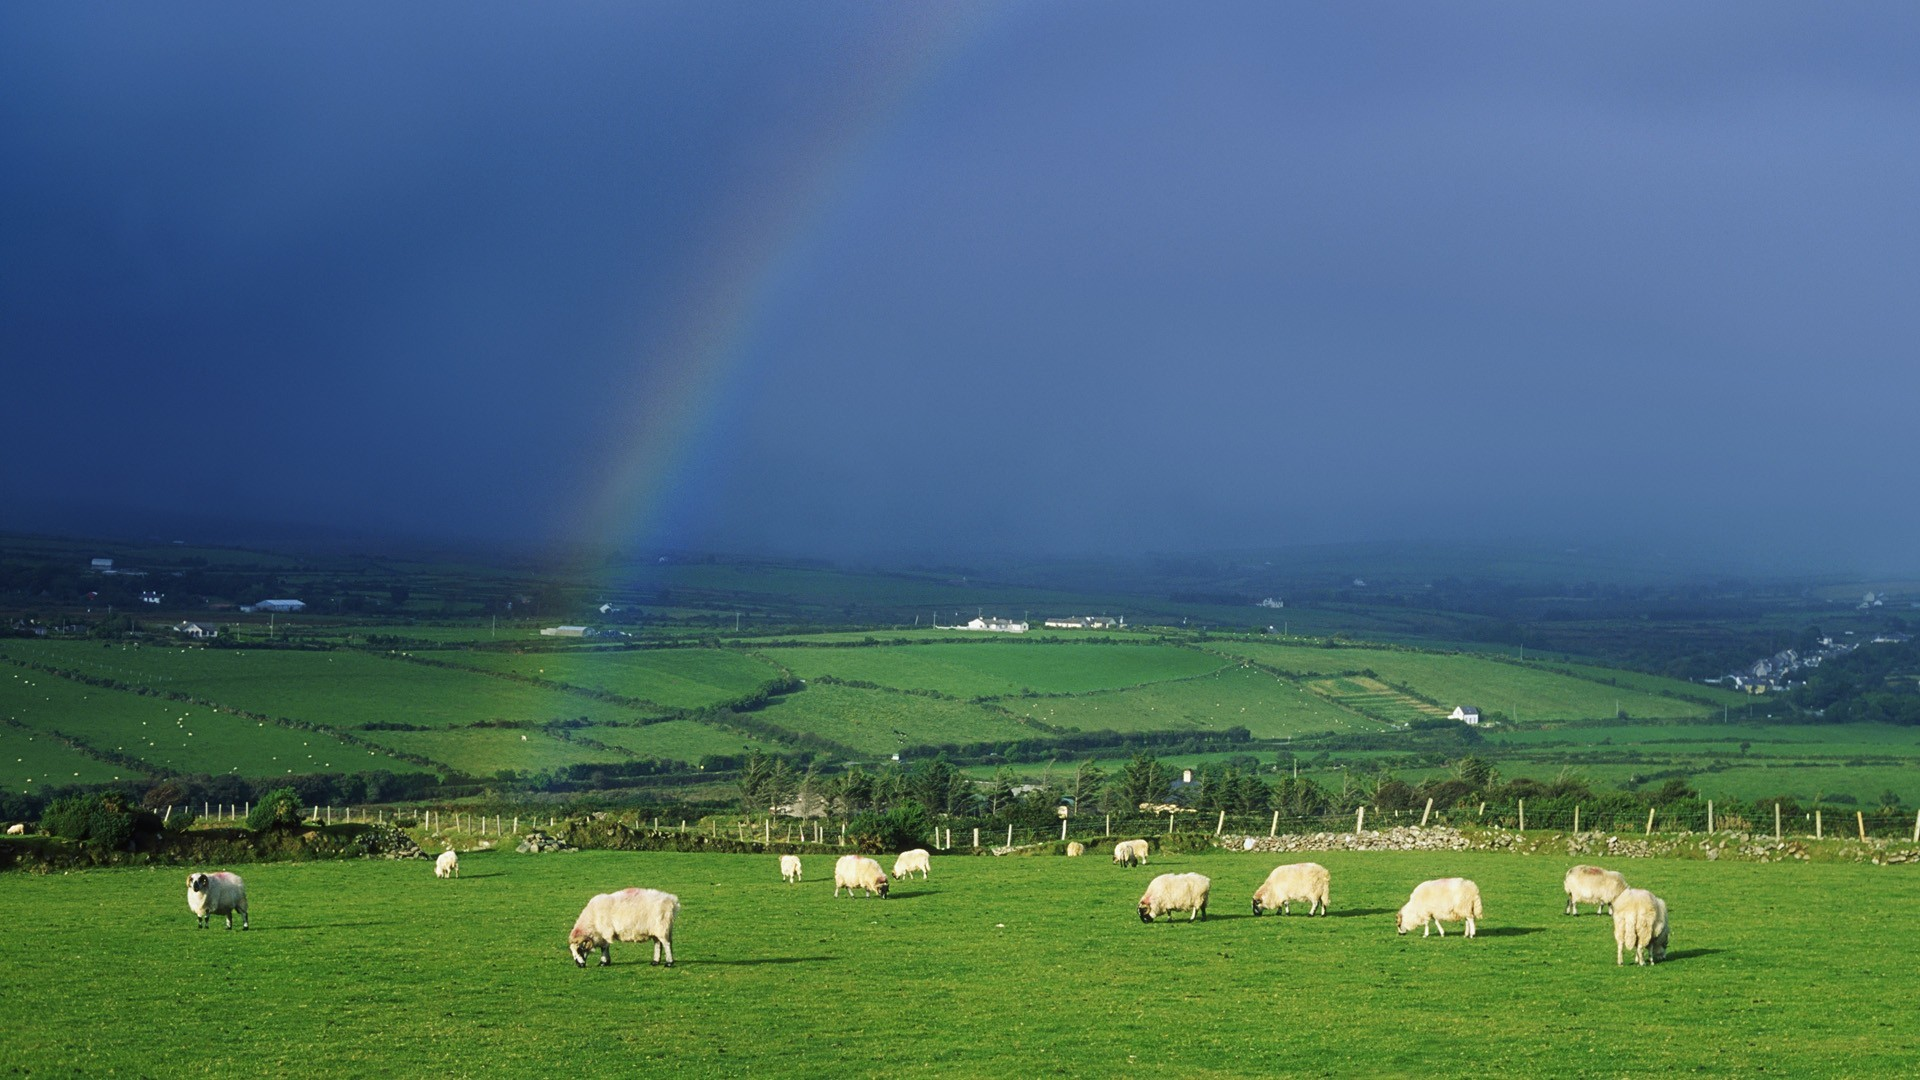 1920x1080 free Sheep Ireland wallpaper, resolution : 1920 x tags: Sheep, Ireland,  Rainbows.